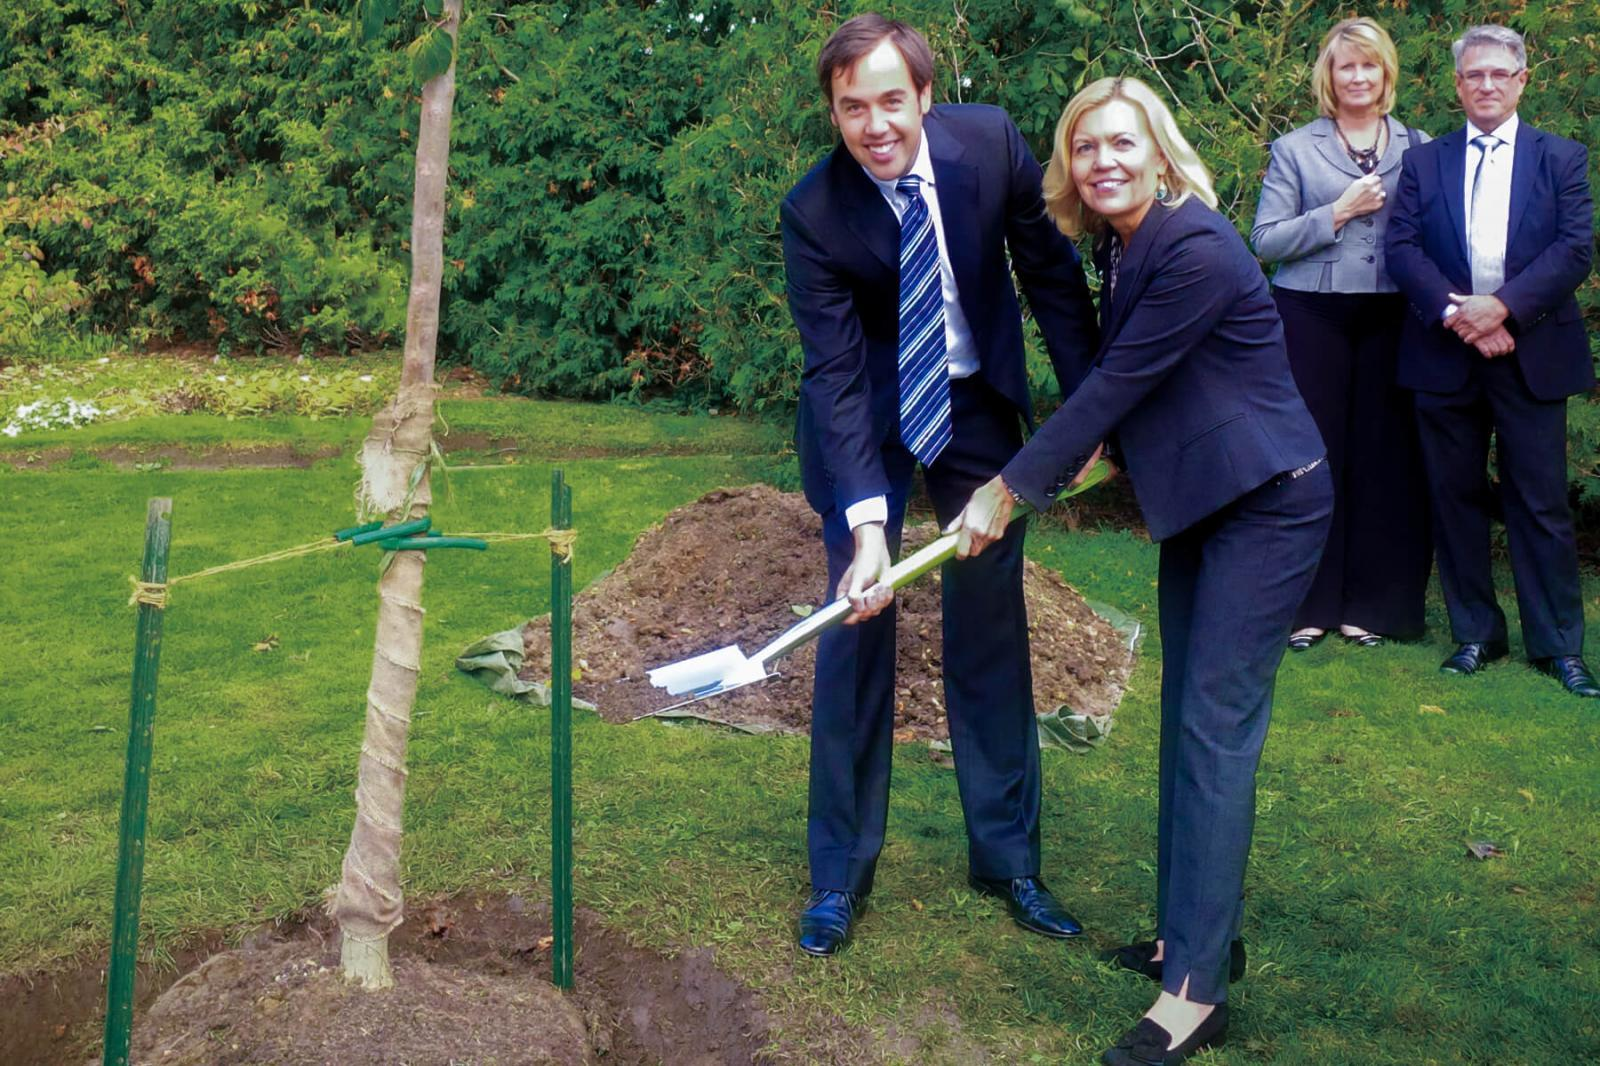 LO plants a tree in memory of Jim Flaherty